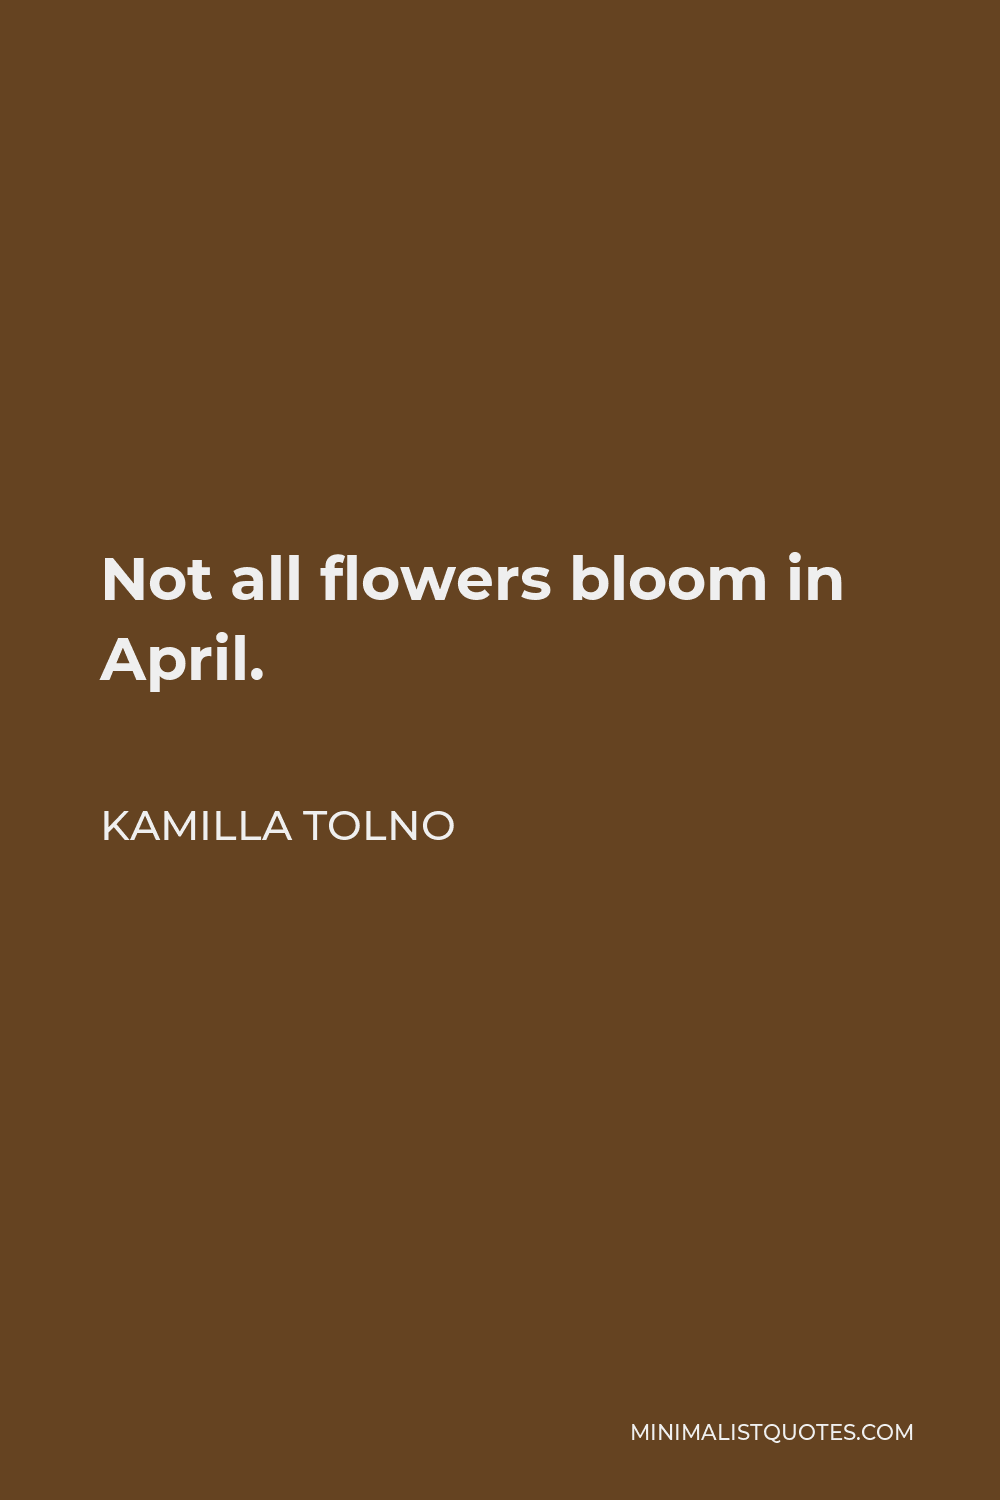 Kamilla Tolno Quote - Not all flowers bloom in April.